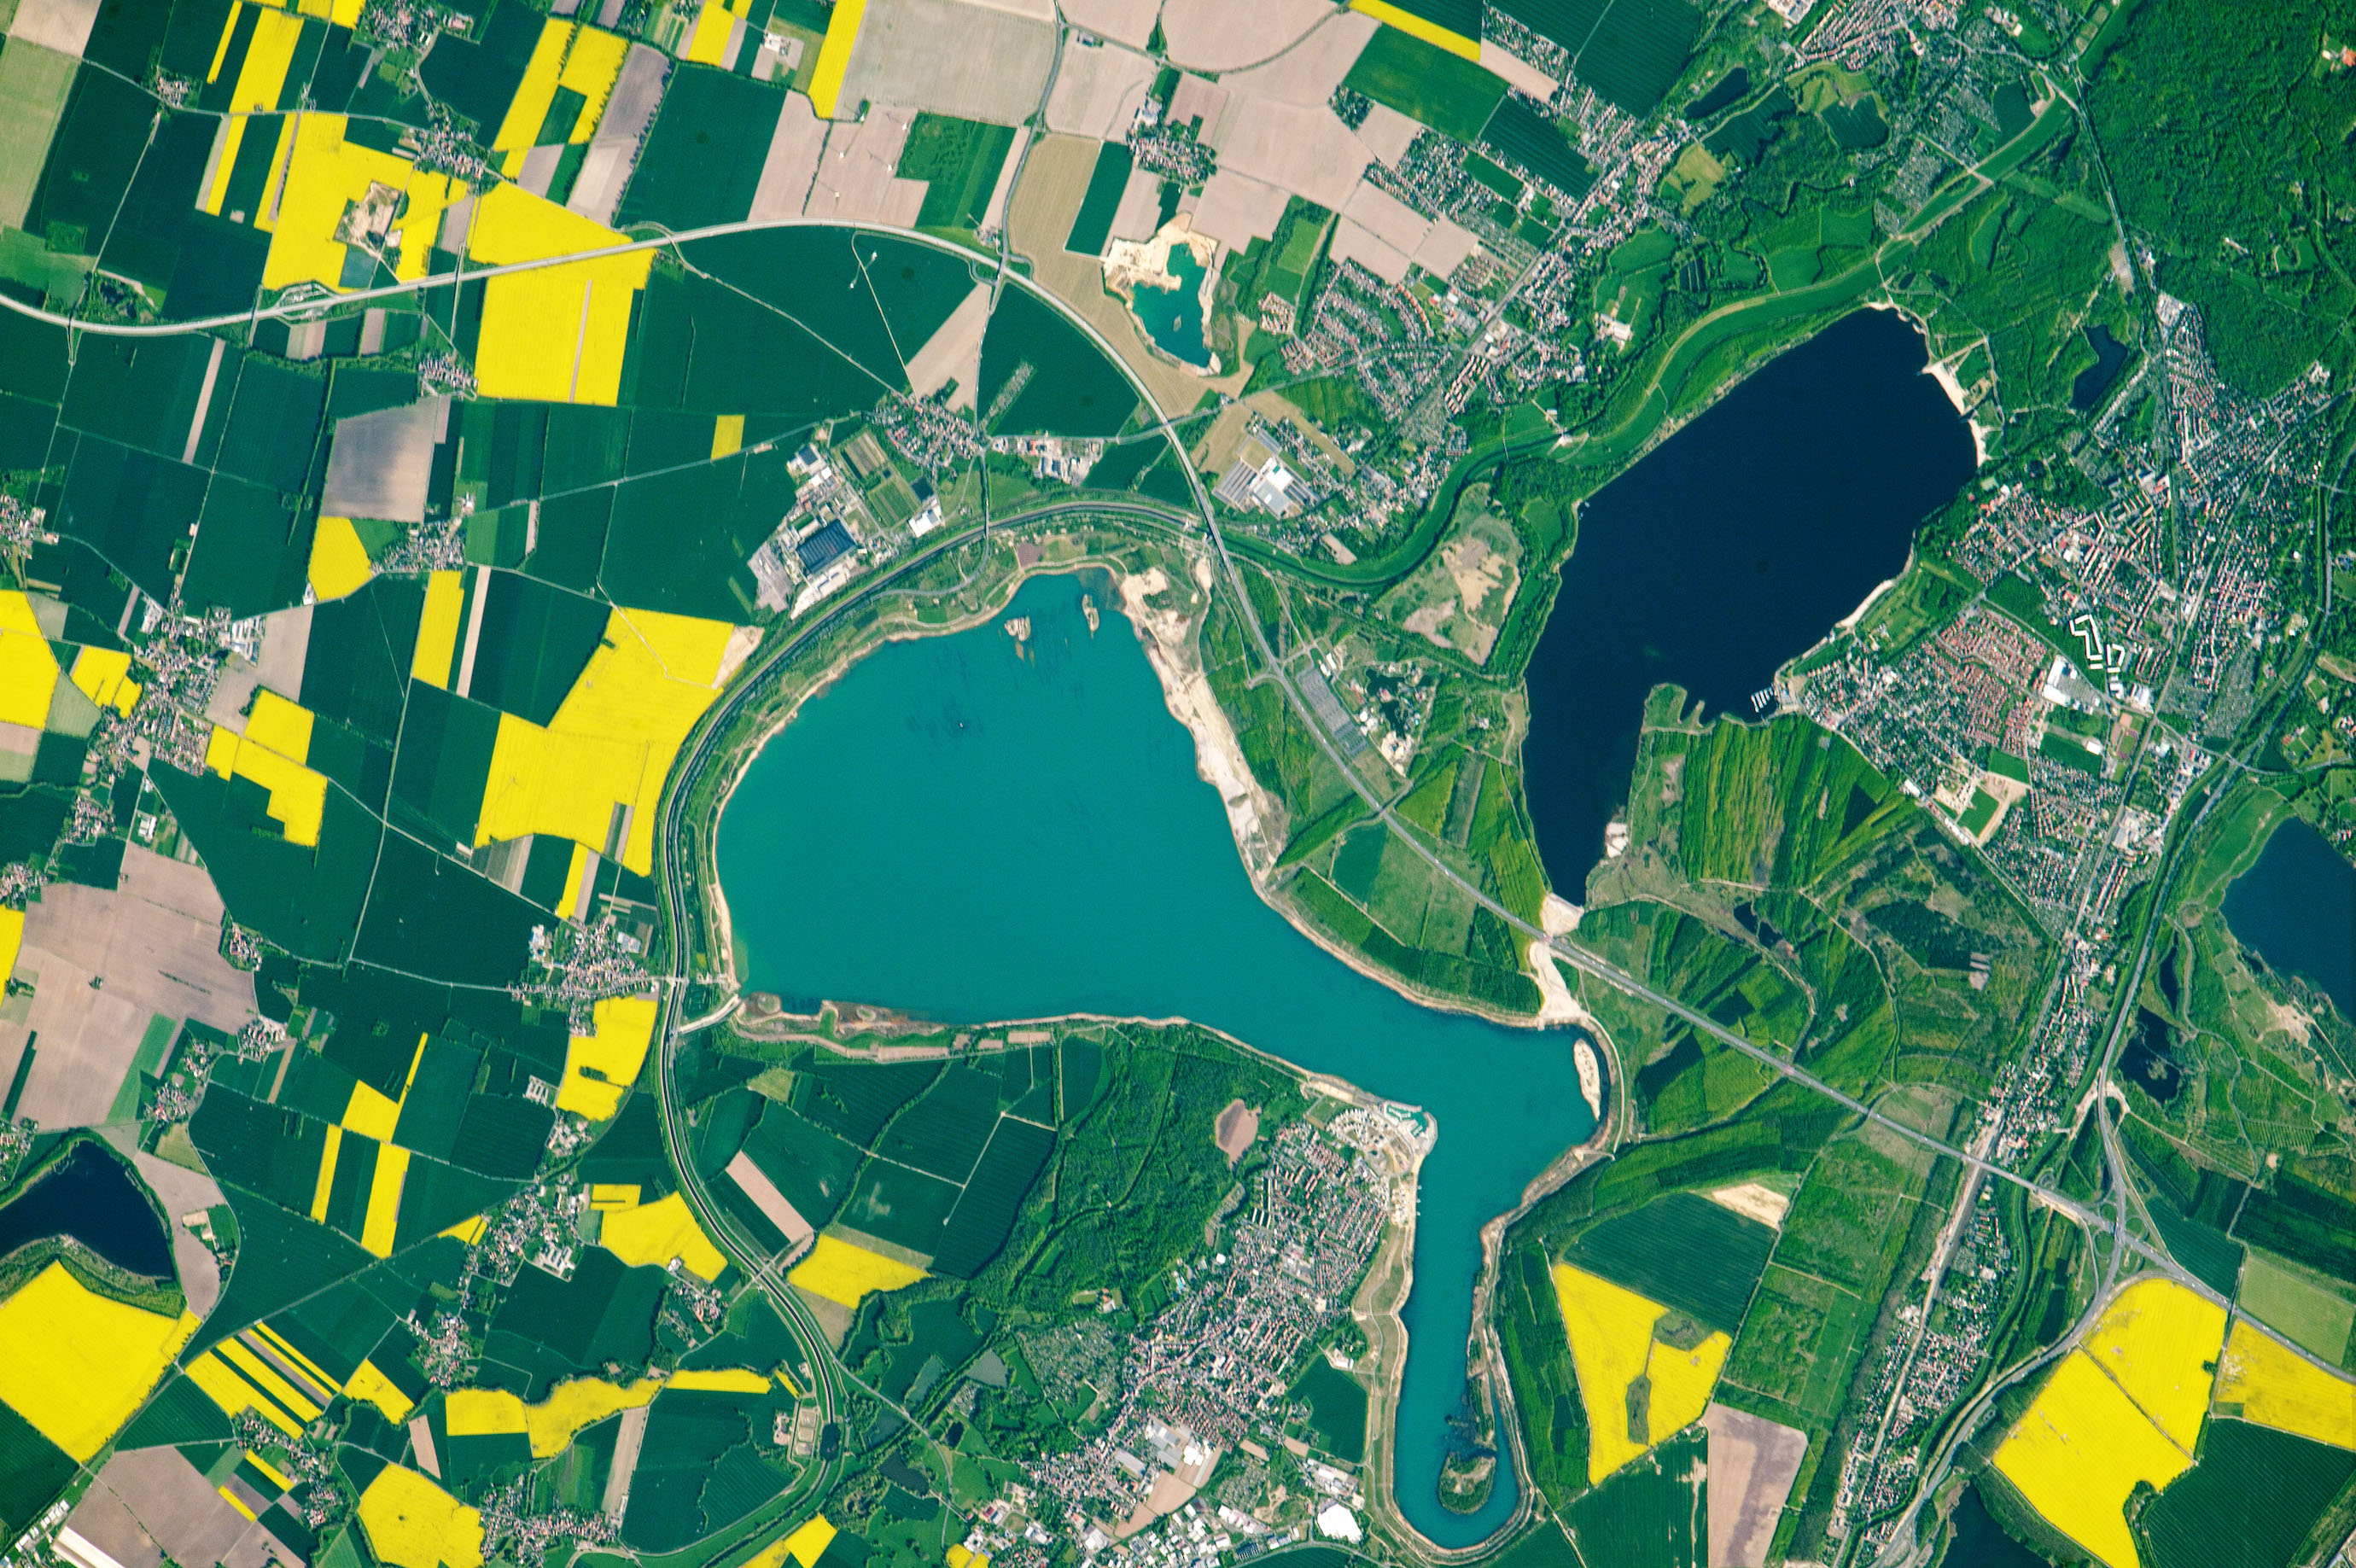 Today's Image of the Day comes from the NASA Earth Observatory and features a look at man-made lakes in Neuseenland, Germany, located about 120 miles southwest of Berlin.